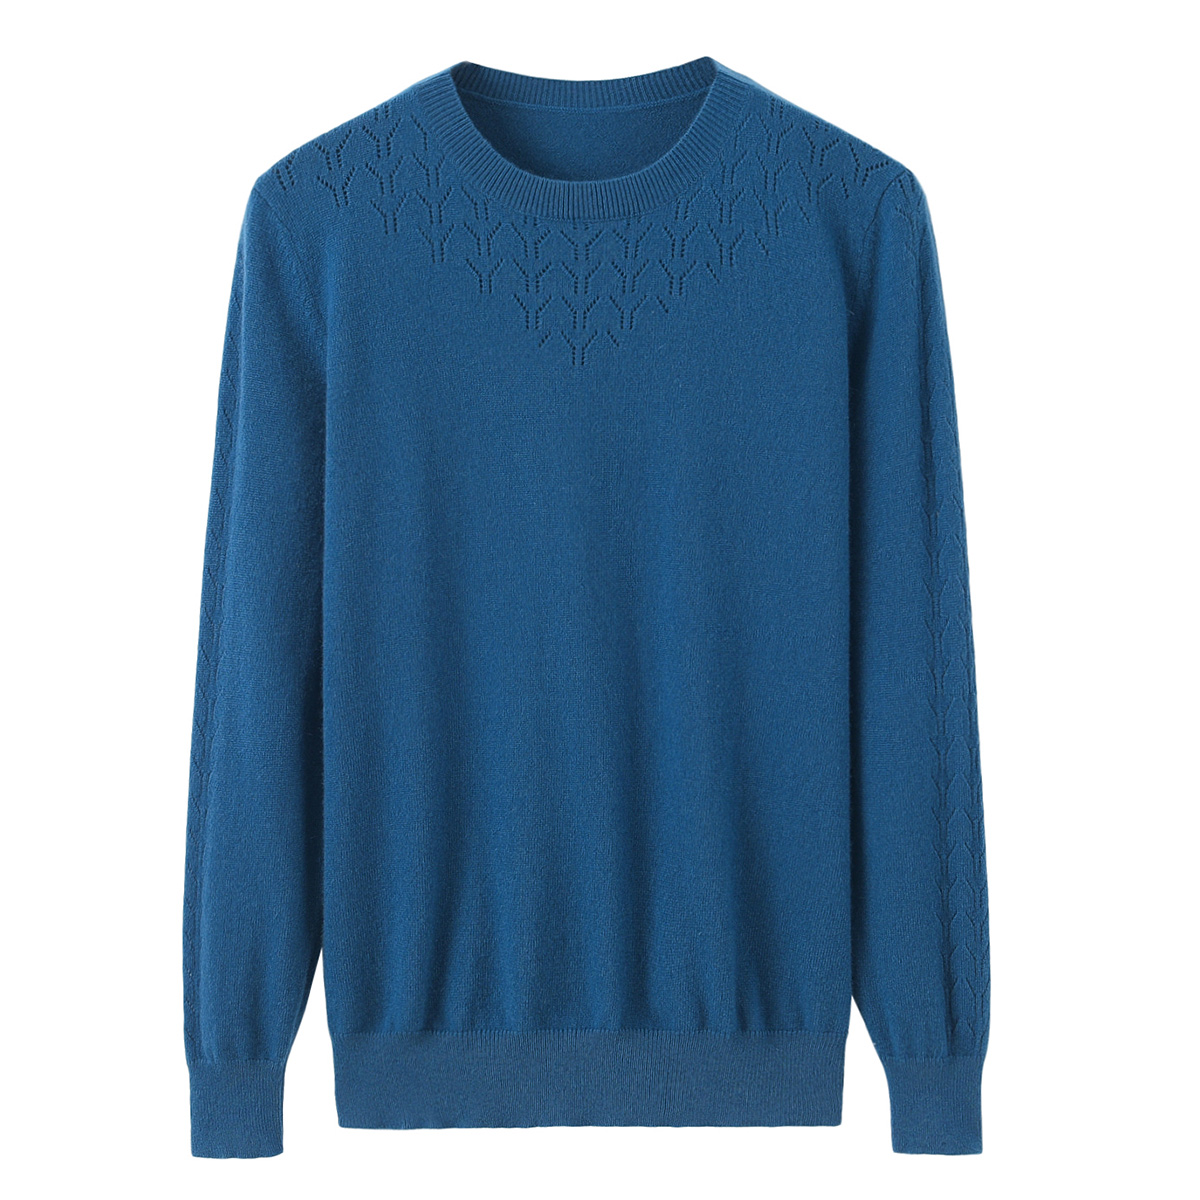 Xingrong autumn and winter new round neck hollow out womens cashmere sweater color simple knitting Korean version commuter bottomed sweater authentic